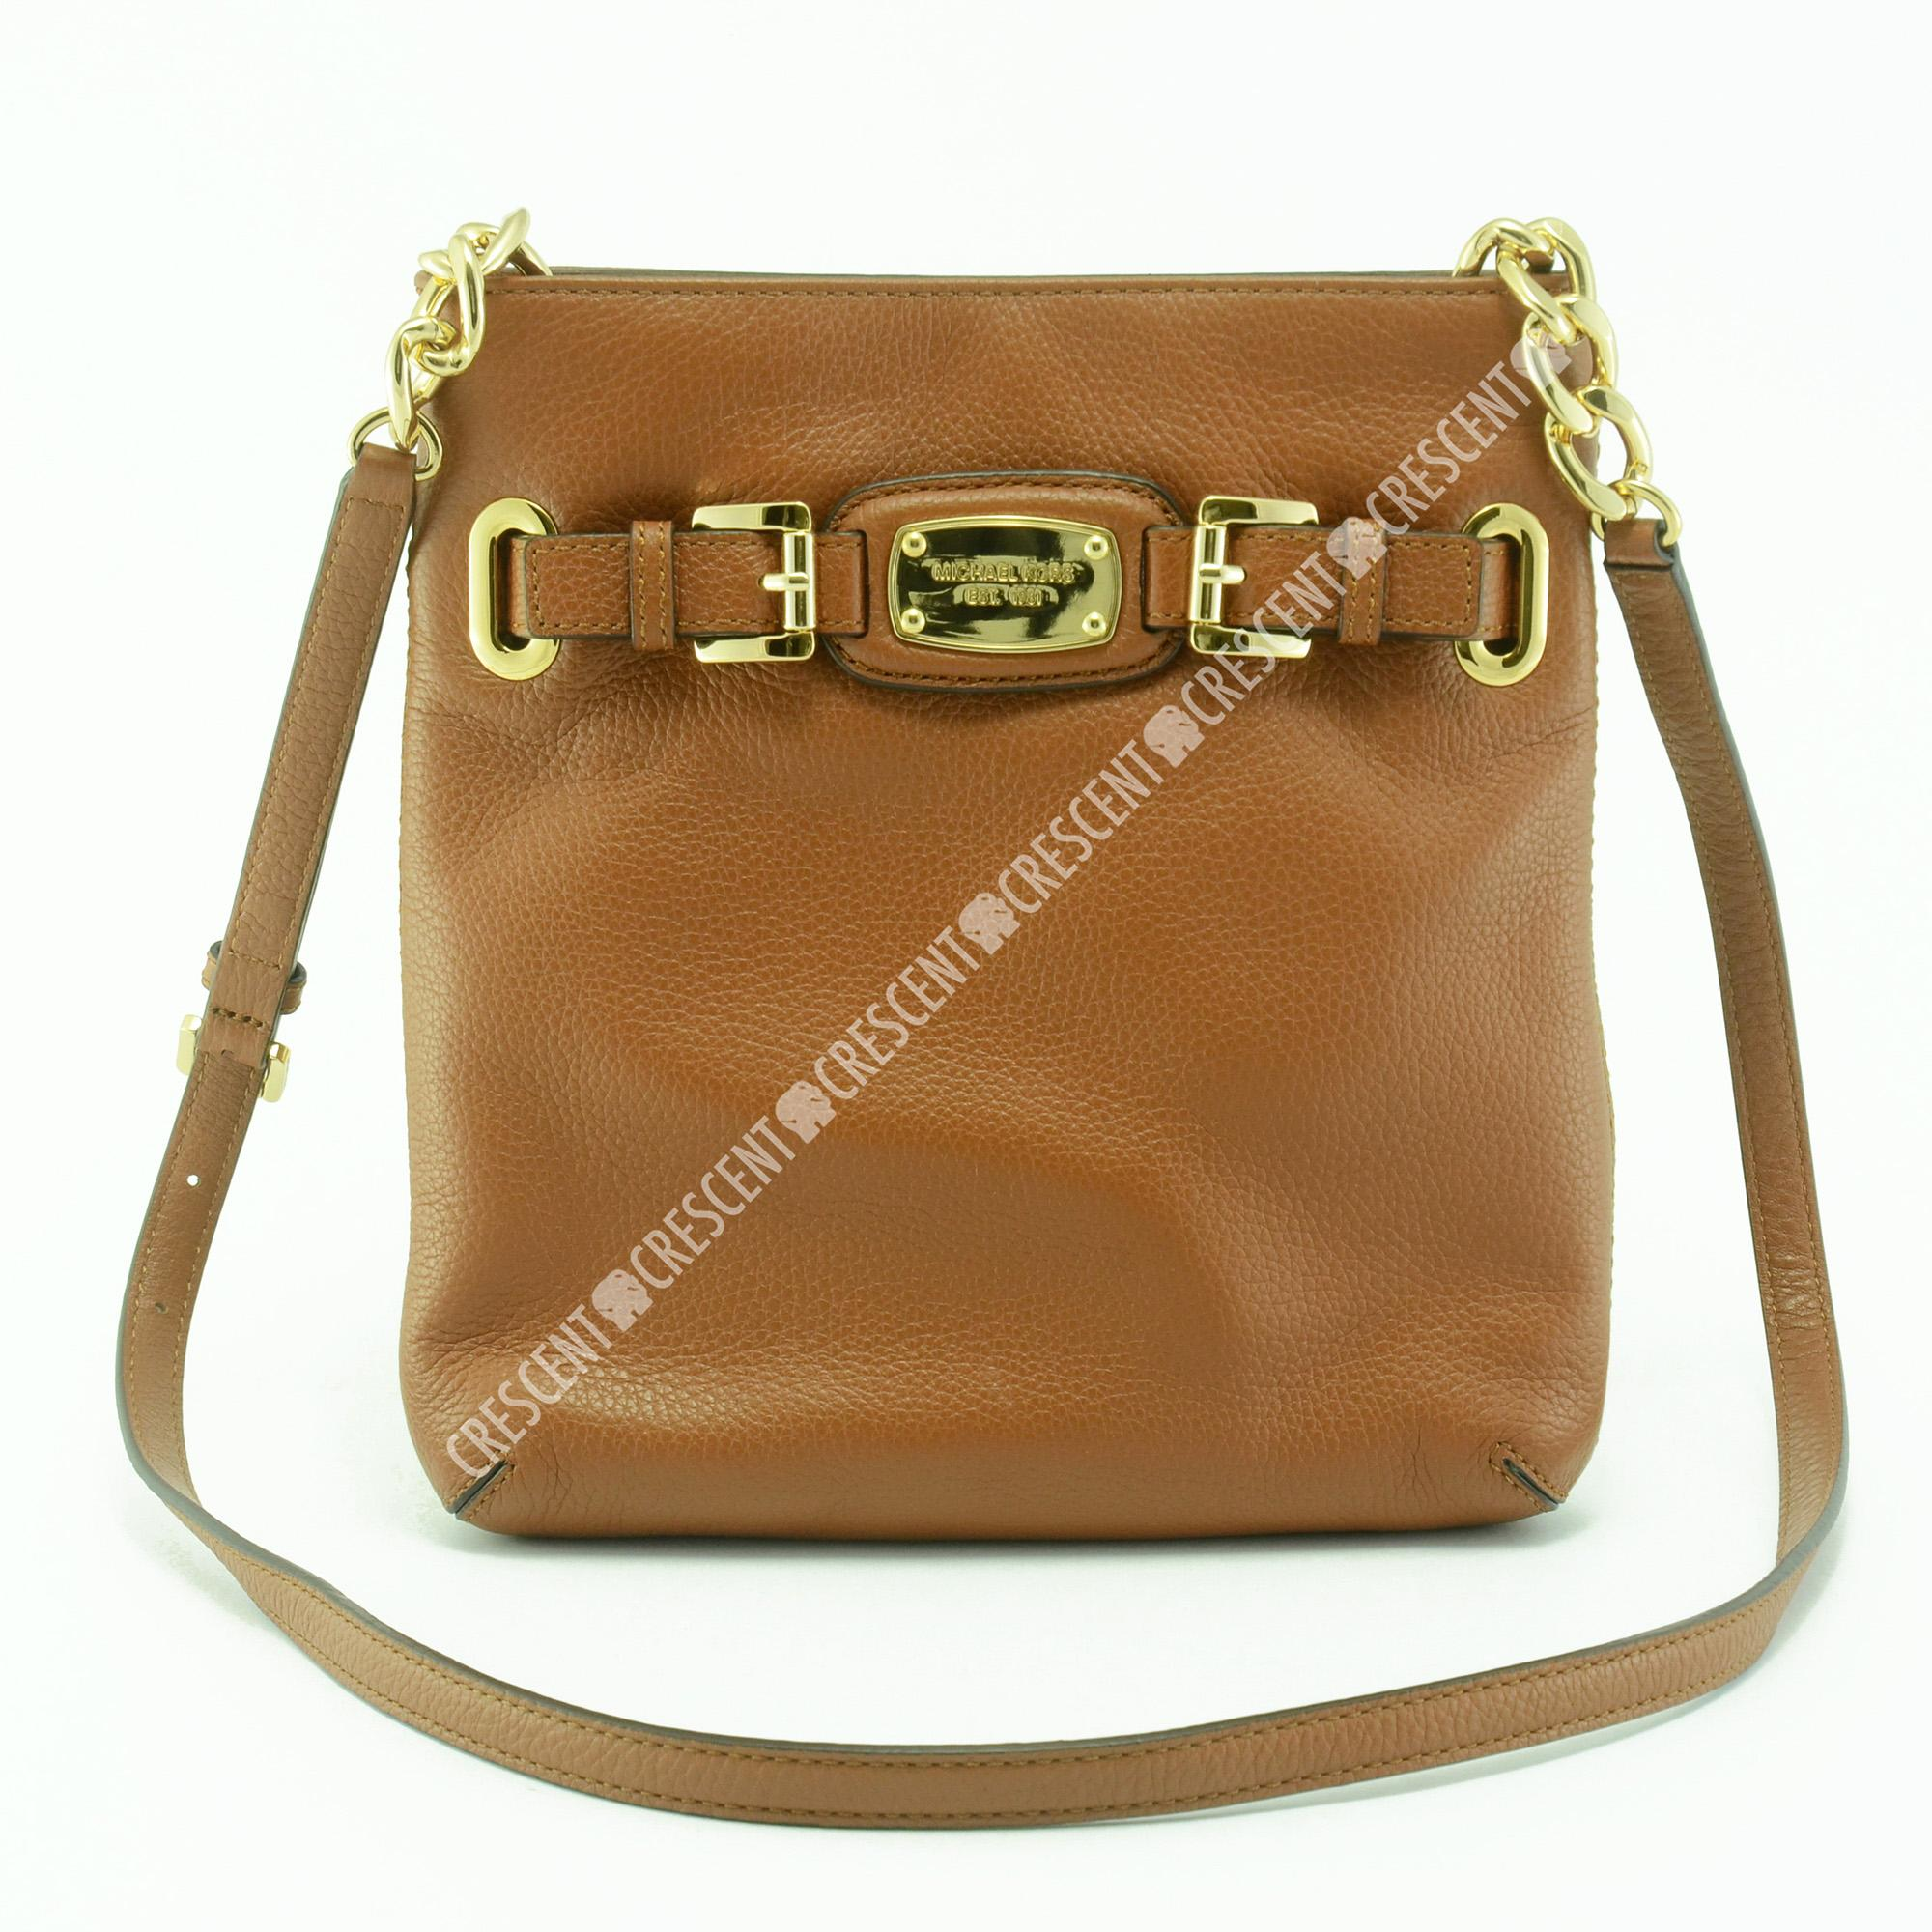 91f31b3f0aa2a3 ... get authentic michael kors hamilton large leather crossbody bag in  brown 344a1 d4deb